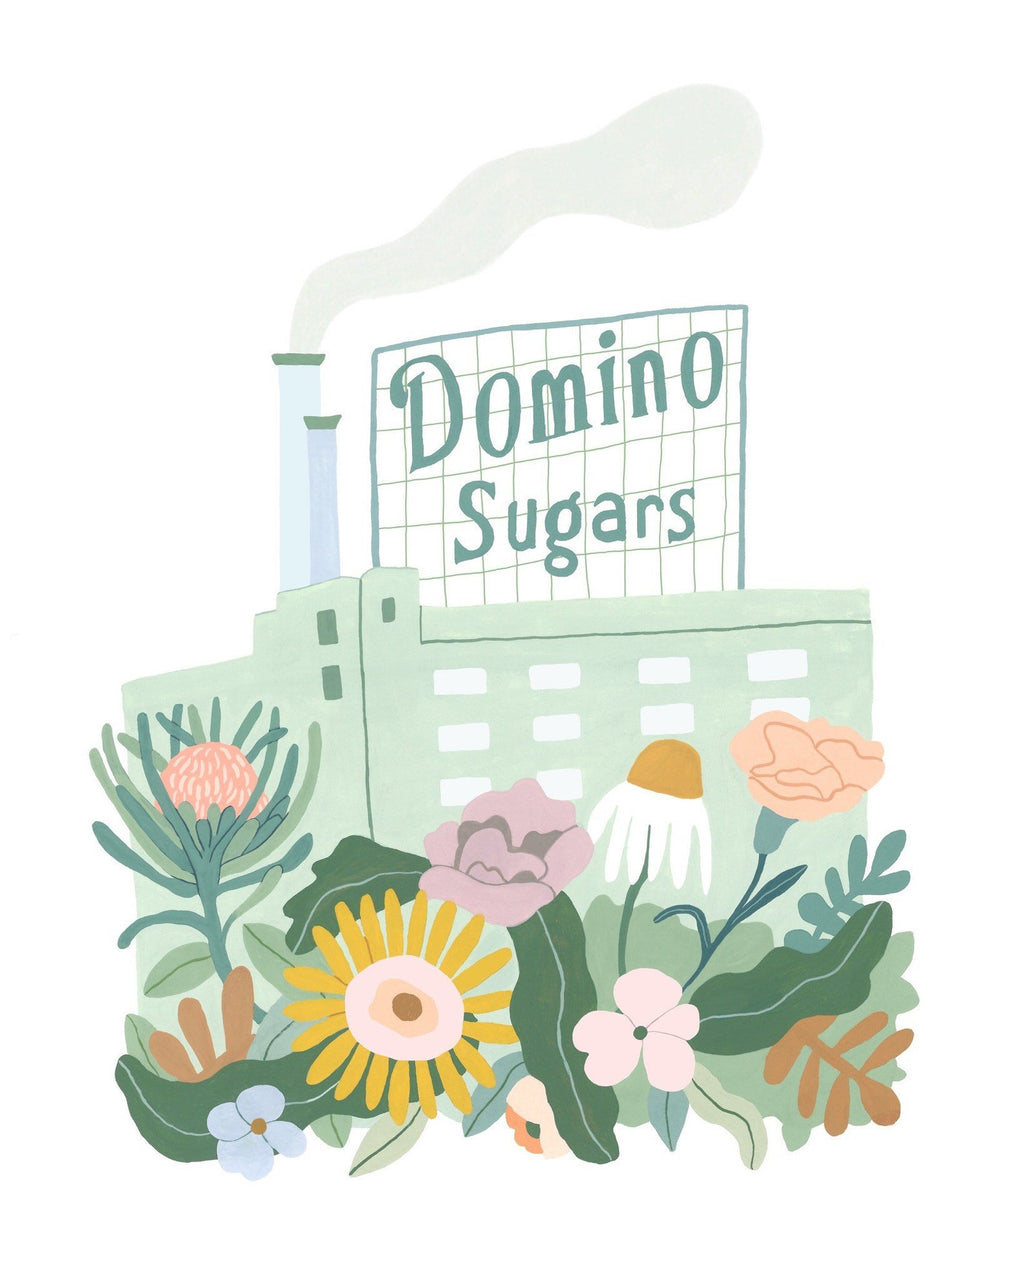 Domino Sugars Print by Megan McKee